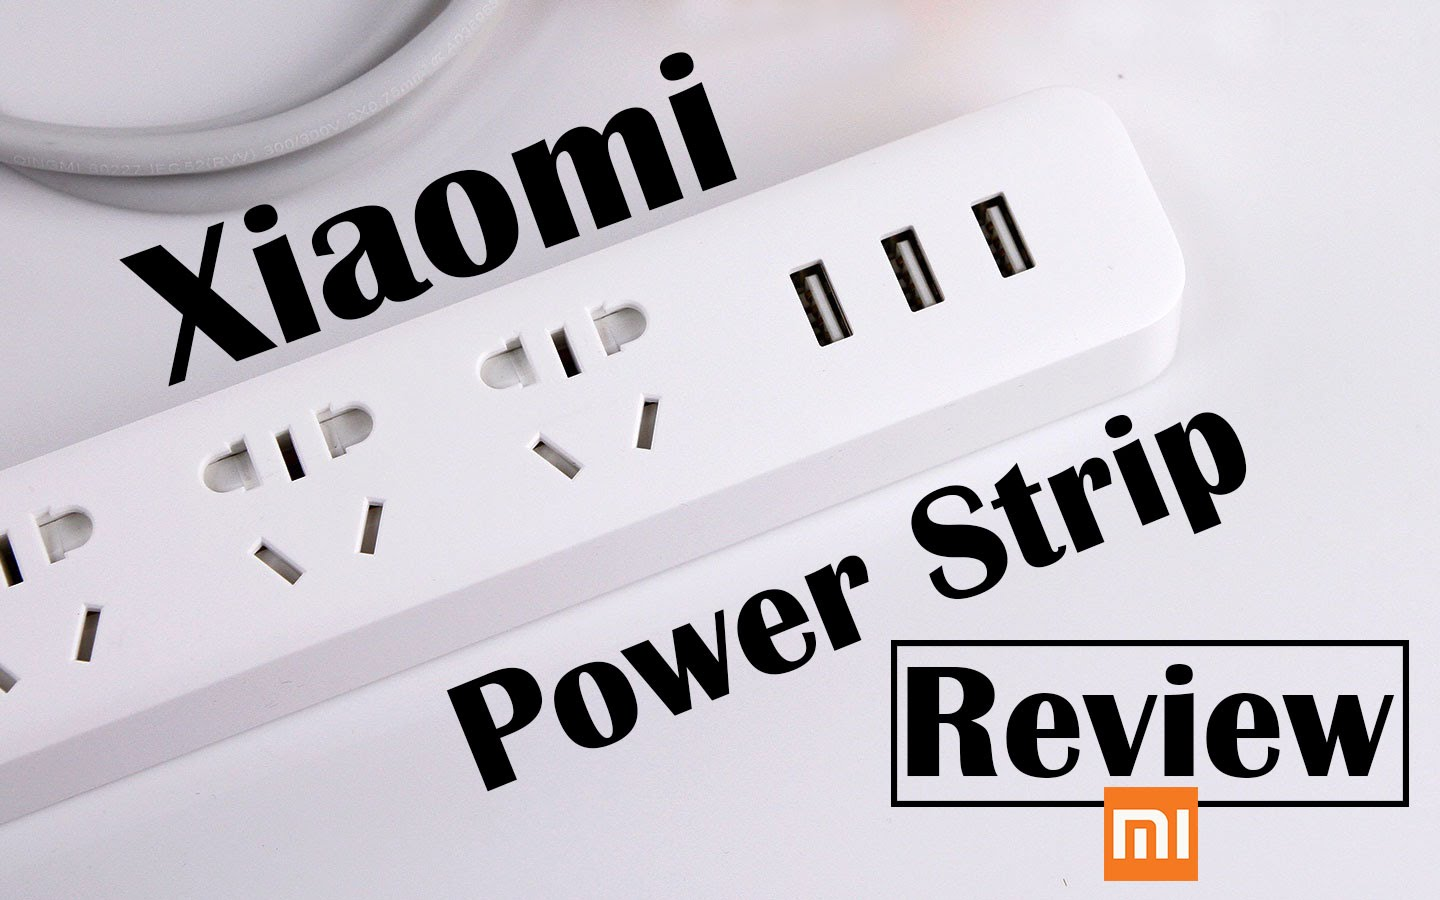 Xiaomi Mi Smart Power Strip Plug Adapter Review